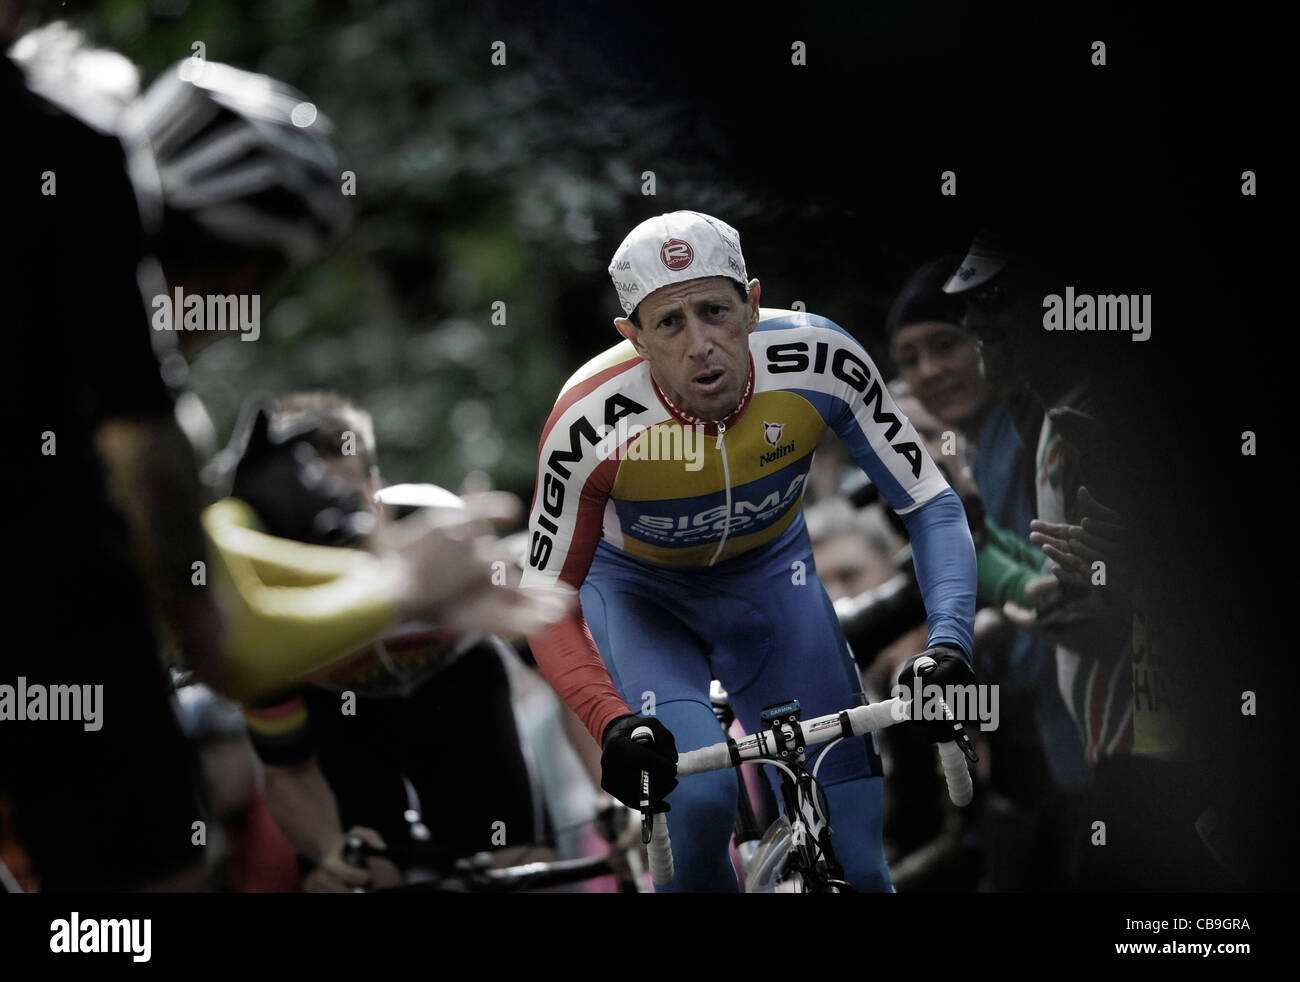 Chris Beales - Sigma Cycles takes on the challenge of the Yorks Hill climb thought to be the old cycle race in the - Stock Image